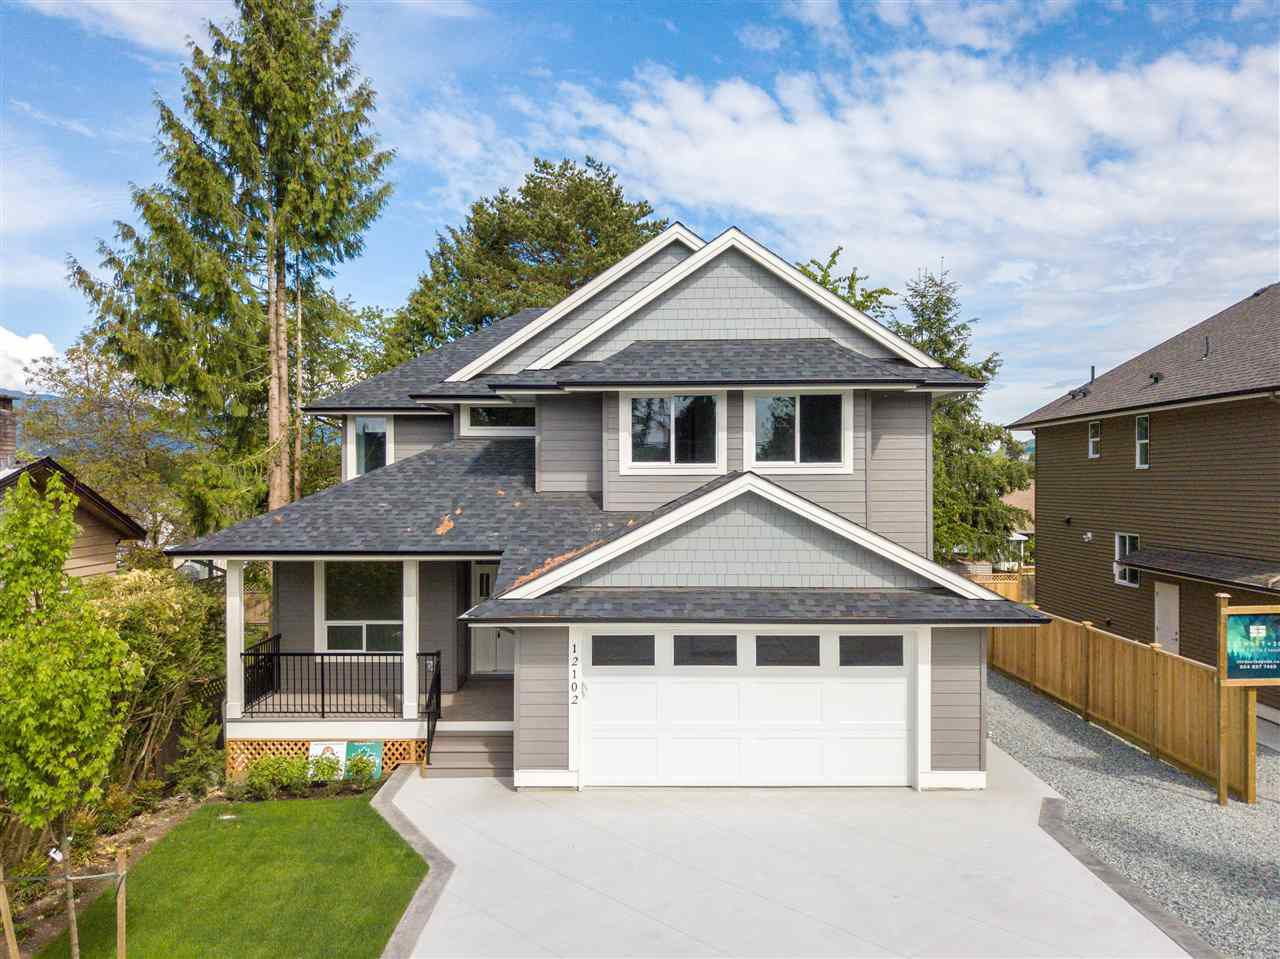 Main Photo: 12102 230 Street in Maple Ridge: East Central House for sale : MLS®# R2371031